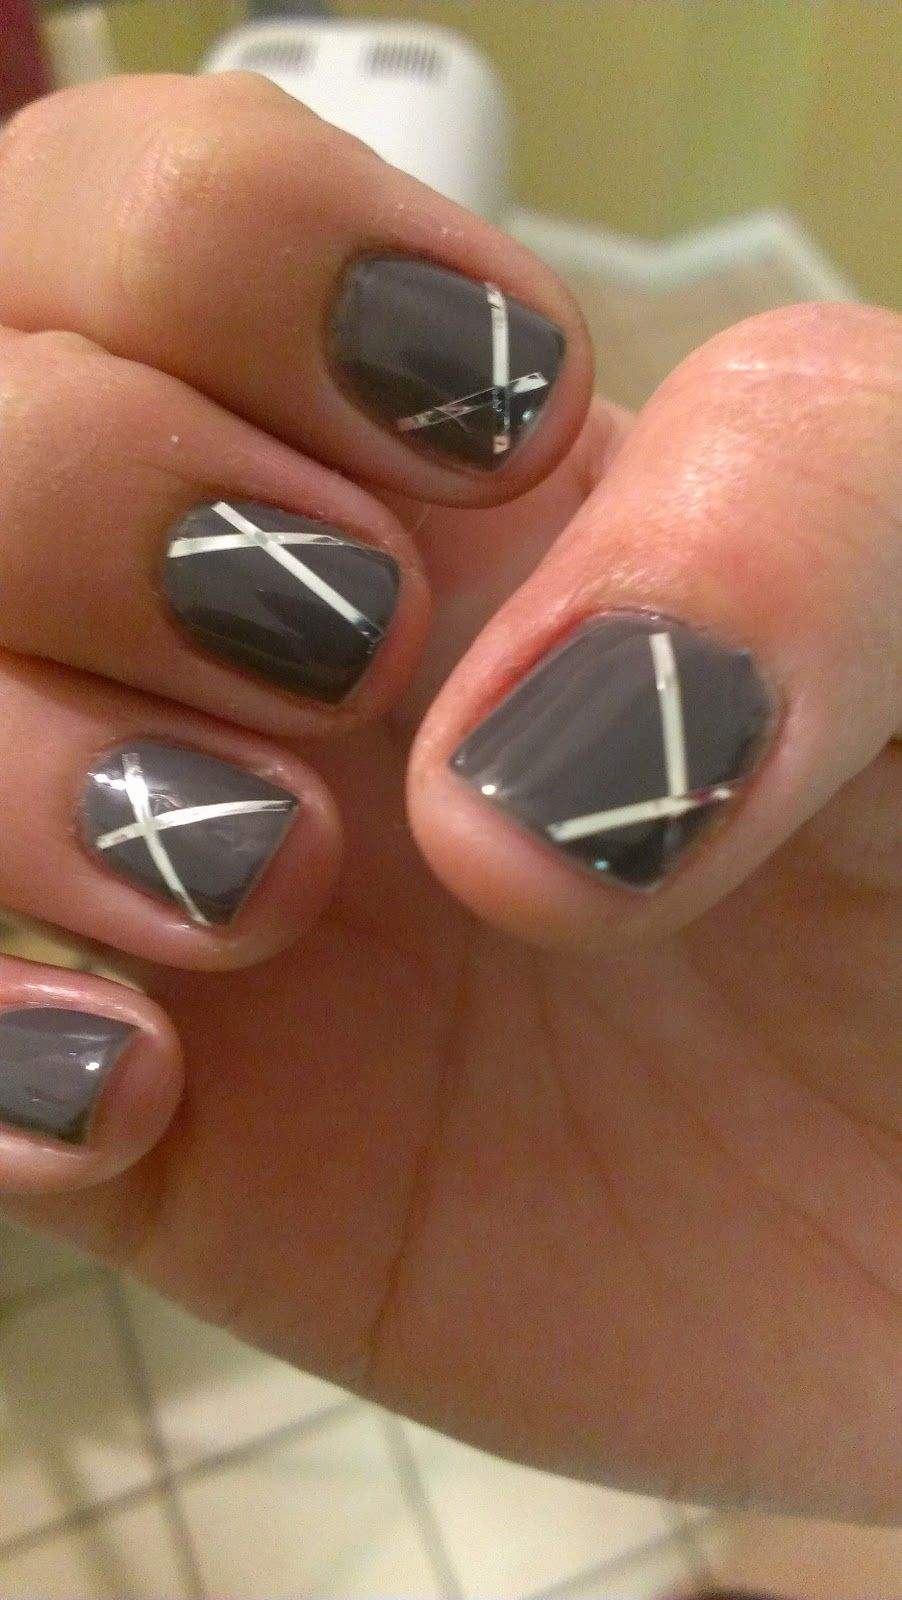 gel nails: good idea for an accent nail   Style   Pinterest   Accent ...